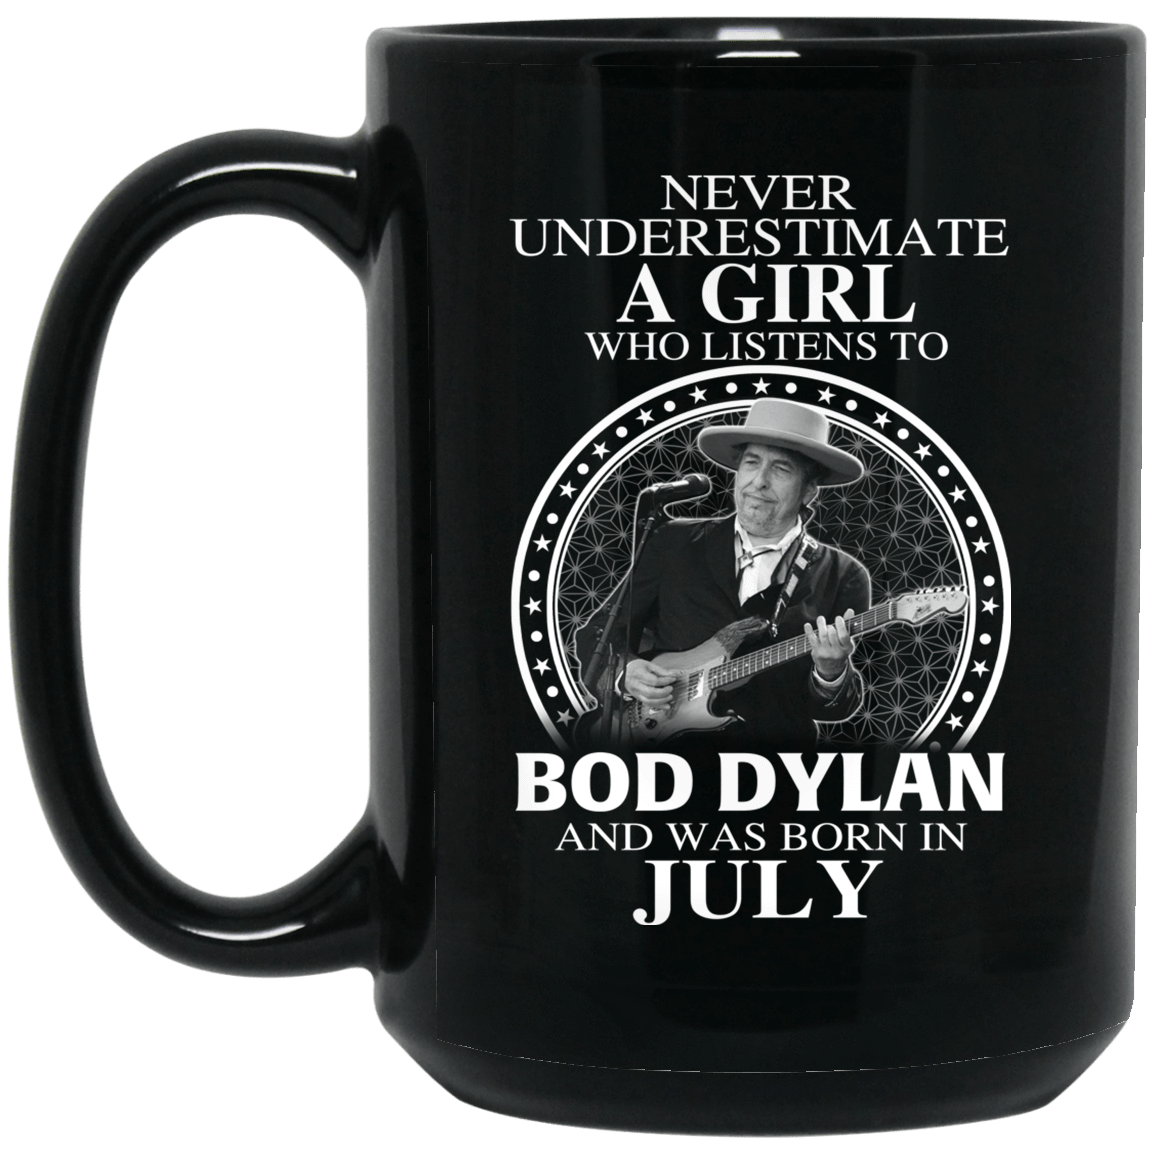 A Girl Who Listens To Bob Dylan And Was Born In July Mug 1066-10182-76154837-49311 - Tee Ript